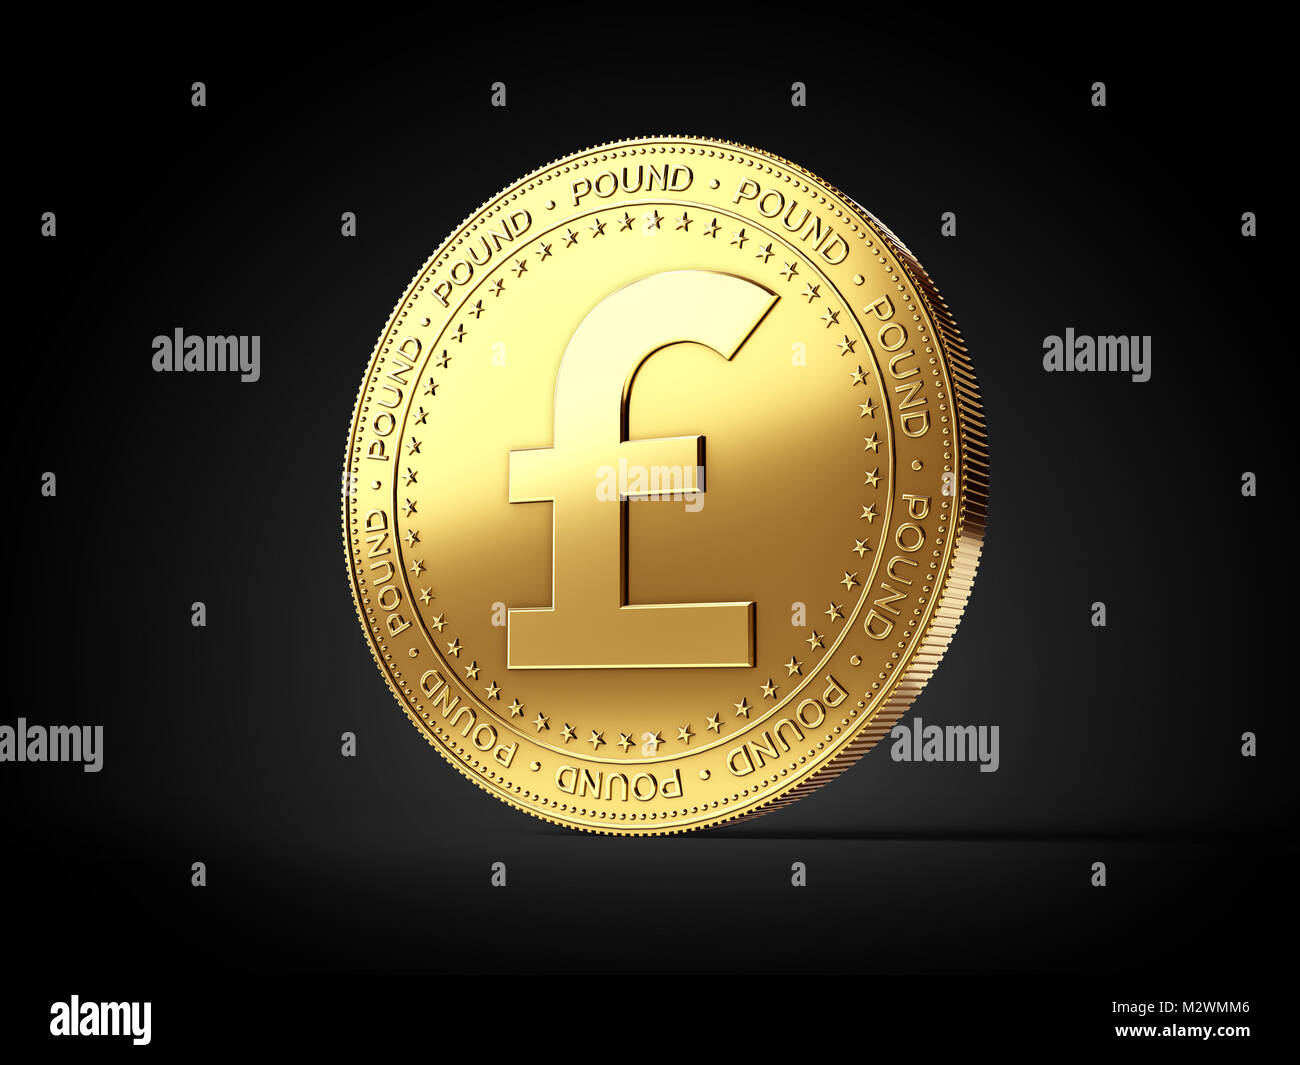 Pound gbp sign on golden coin isolated on black background stock pound gbp sign on golden coin isolated on black background realistic 3d rendering biocorpaavc Gallery